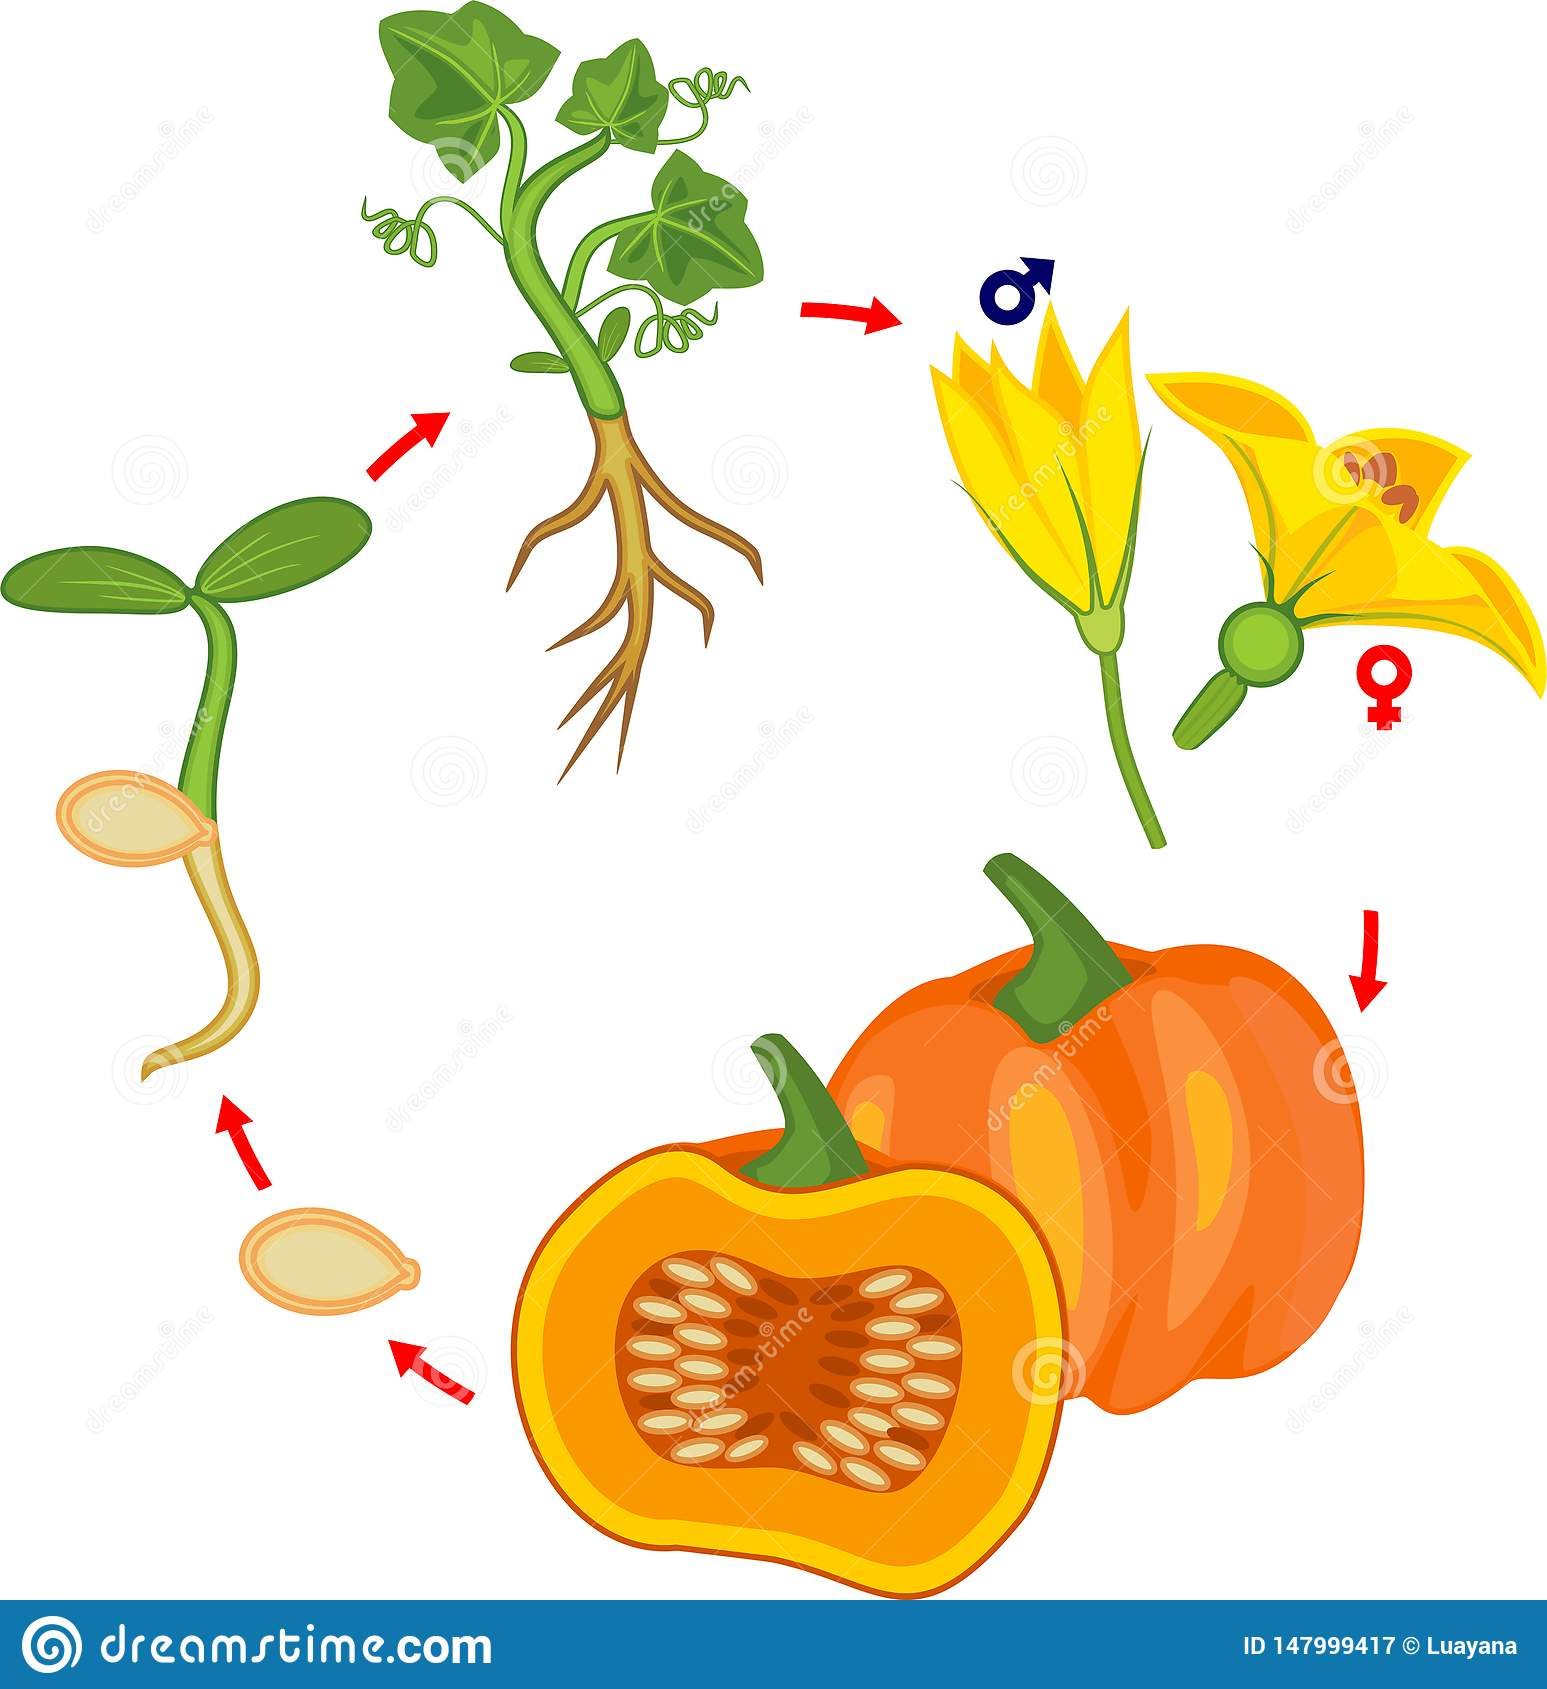 Life Cycle Of Pumpkin Plant Growth Stages From Seed To